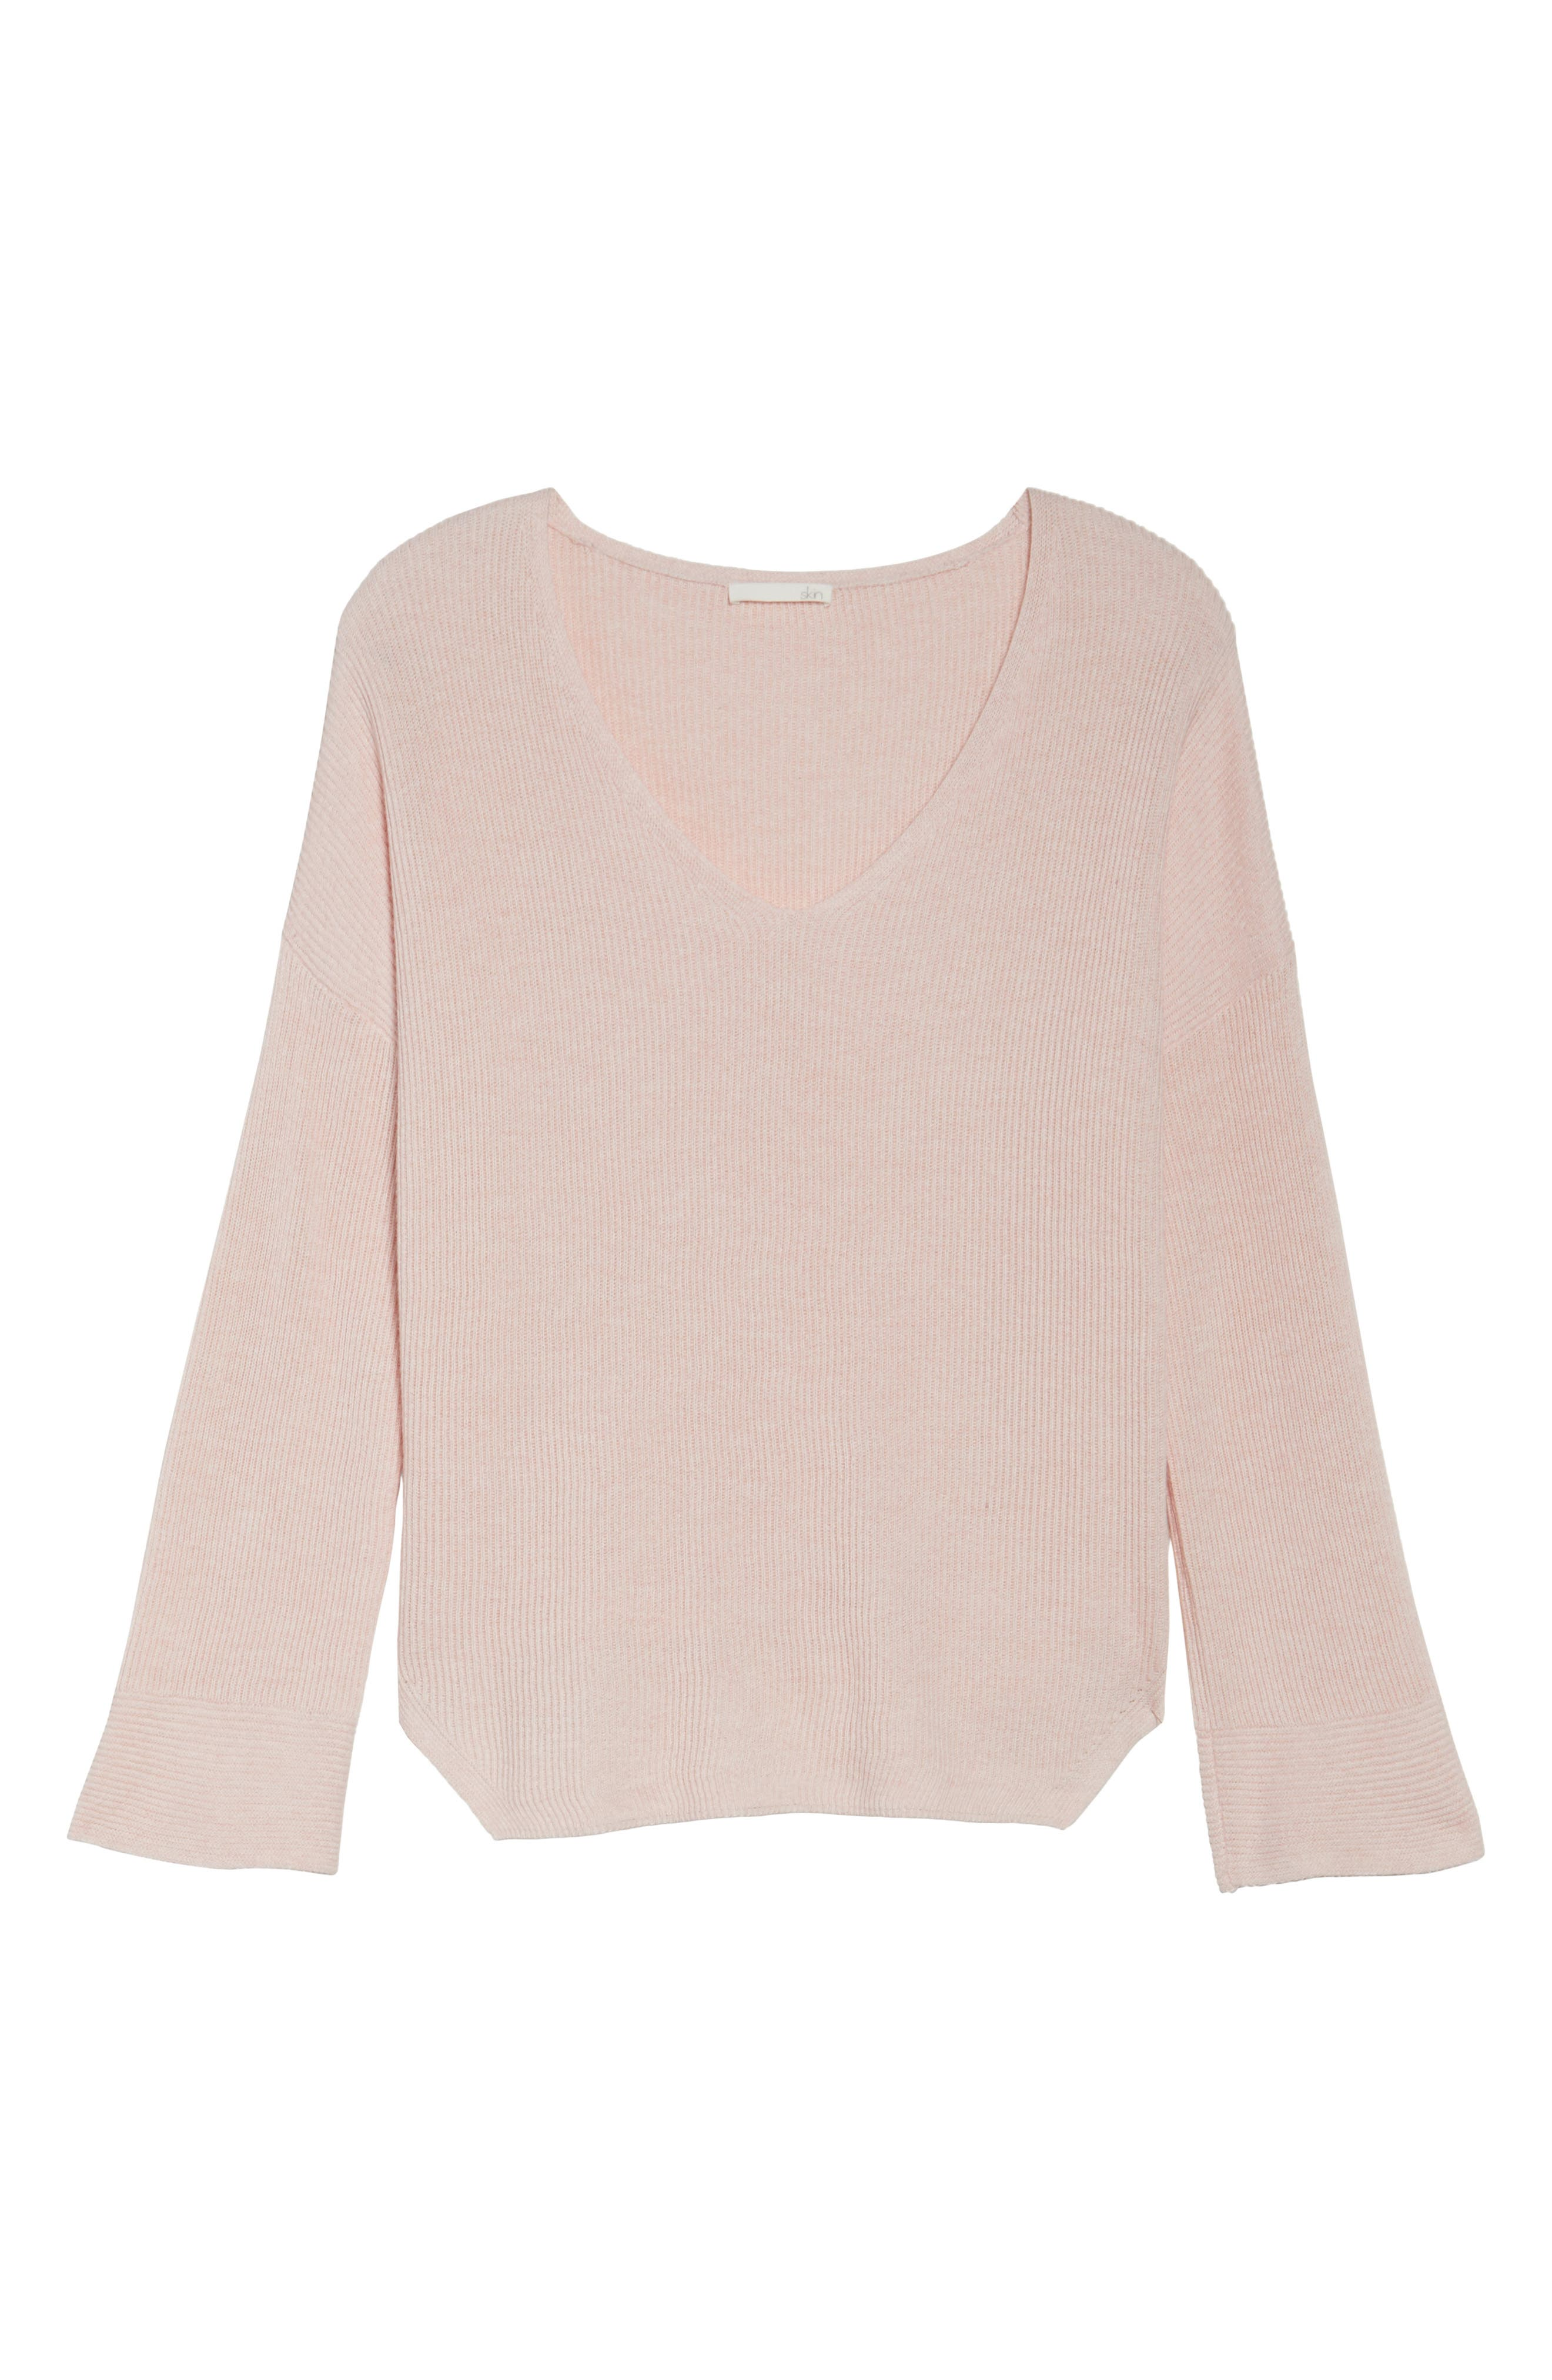 Veronica Lounge Pullover,                             Alternate thumbnail 4, color,                             Soft Pink